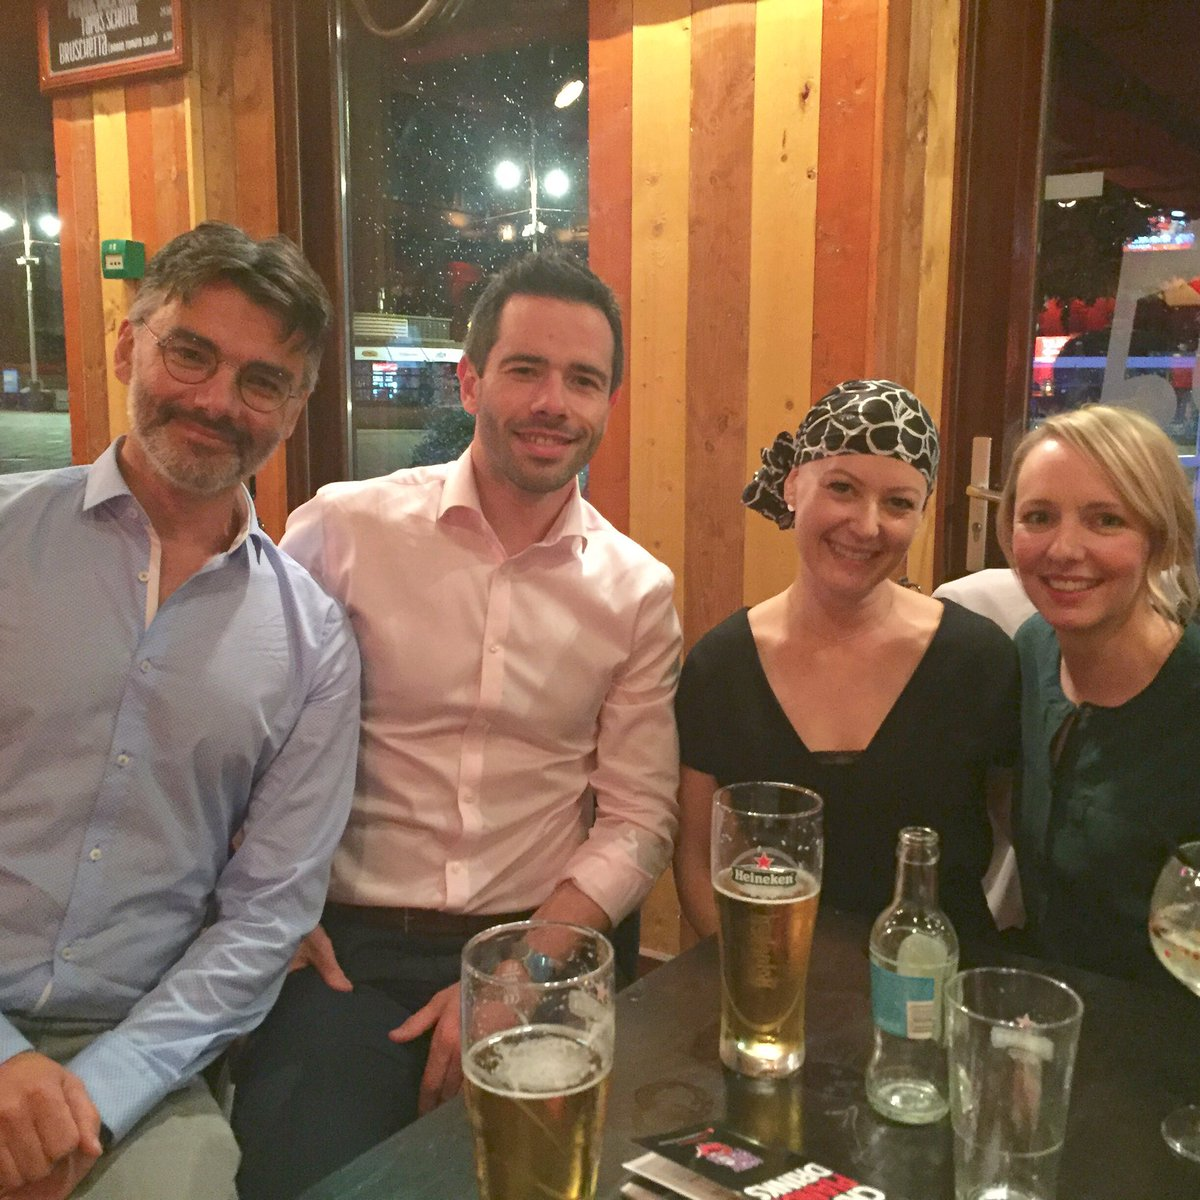 That&#39;s a wrap for #ESPEN2017 excellent conference by the Dutch  Rehydrating post presentations @pjmweijs @danni_dietitian @LCostello85 <br>http://pic.twitter.com/RqXZDTlPte